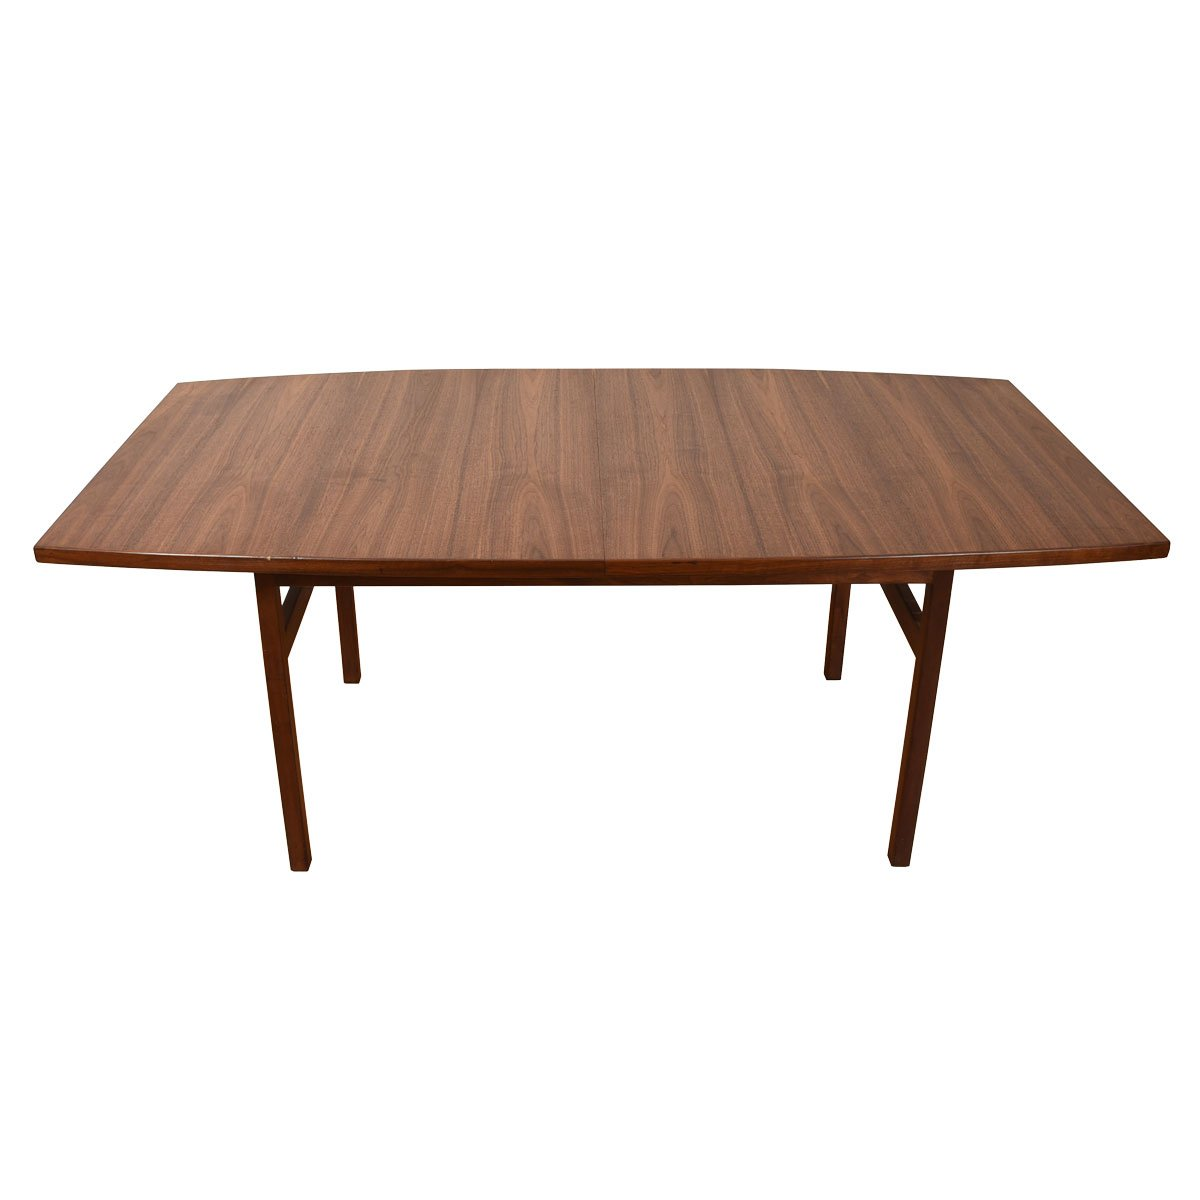 MCM Walnut Colossal Expanding Bowed Shaped Dining Table